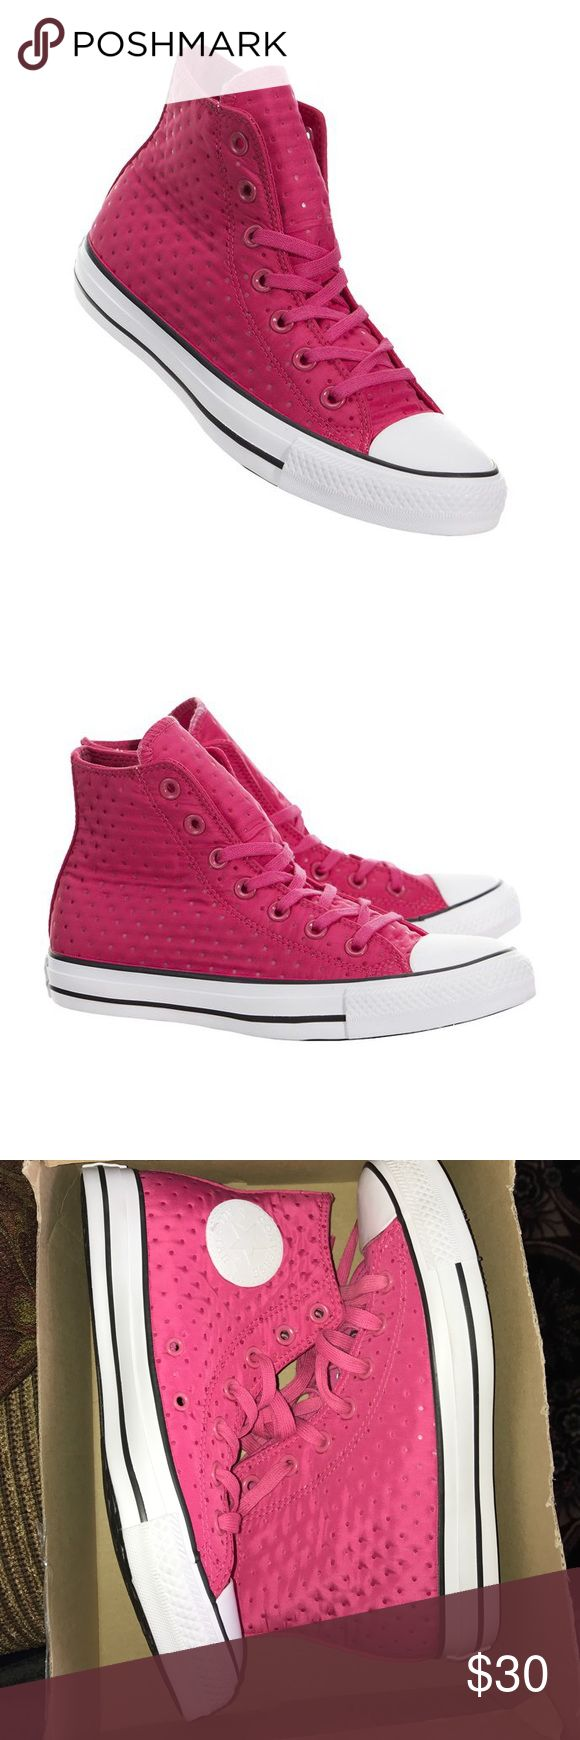 Pink high top converse New Converse Shoes Sneakers